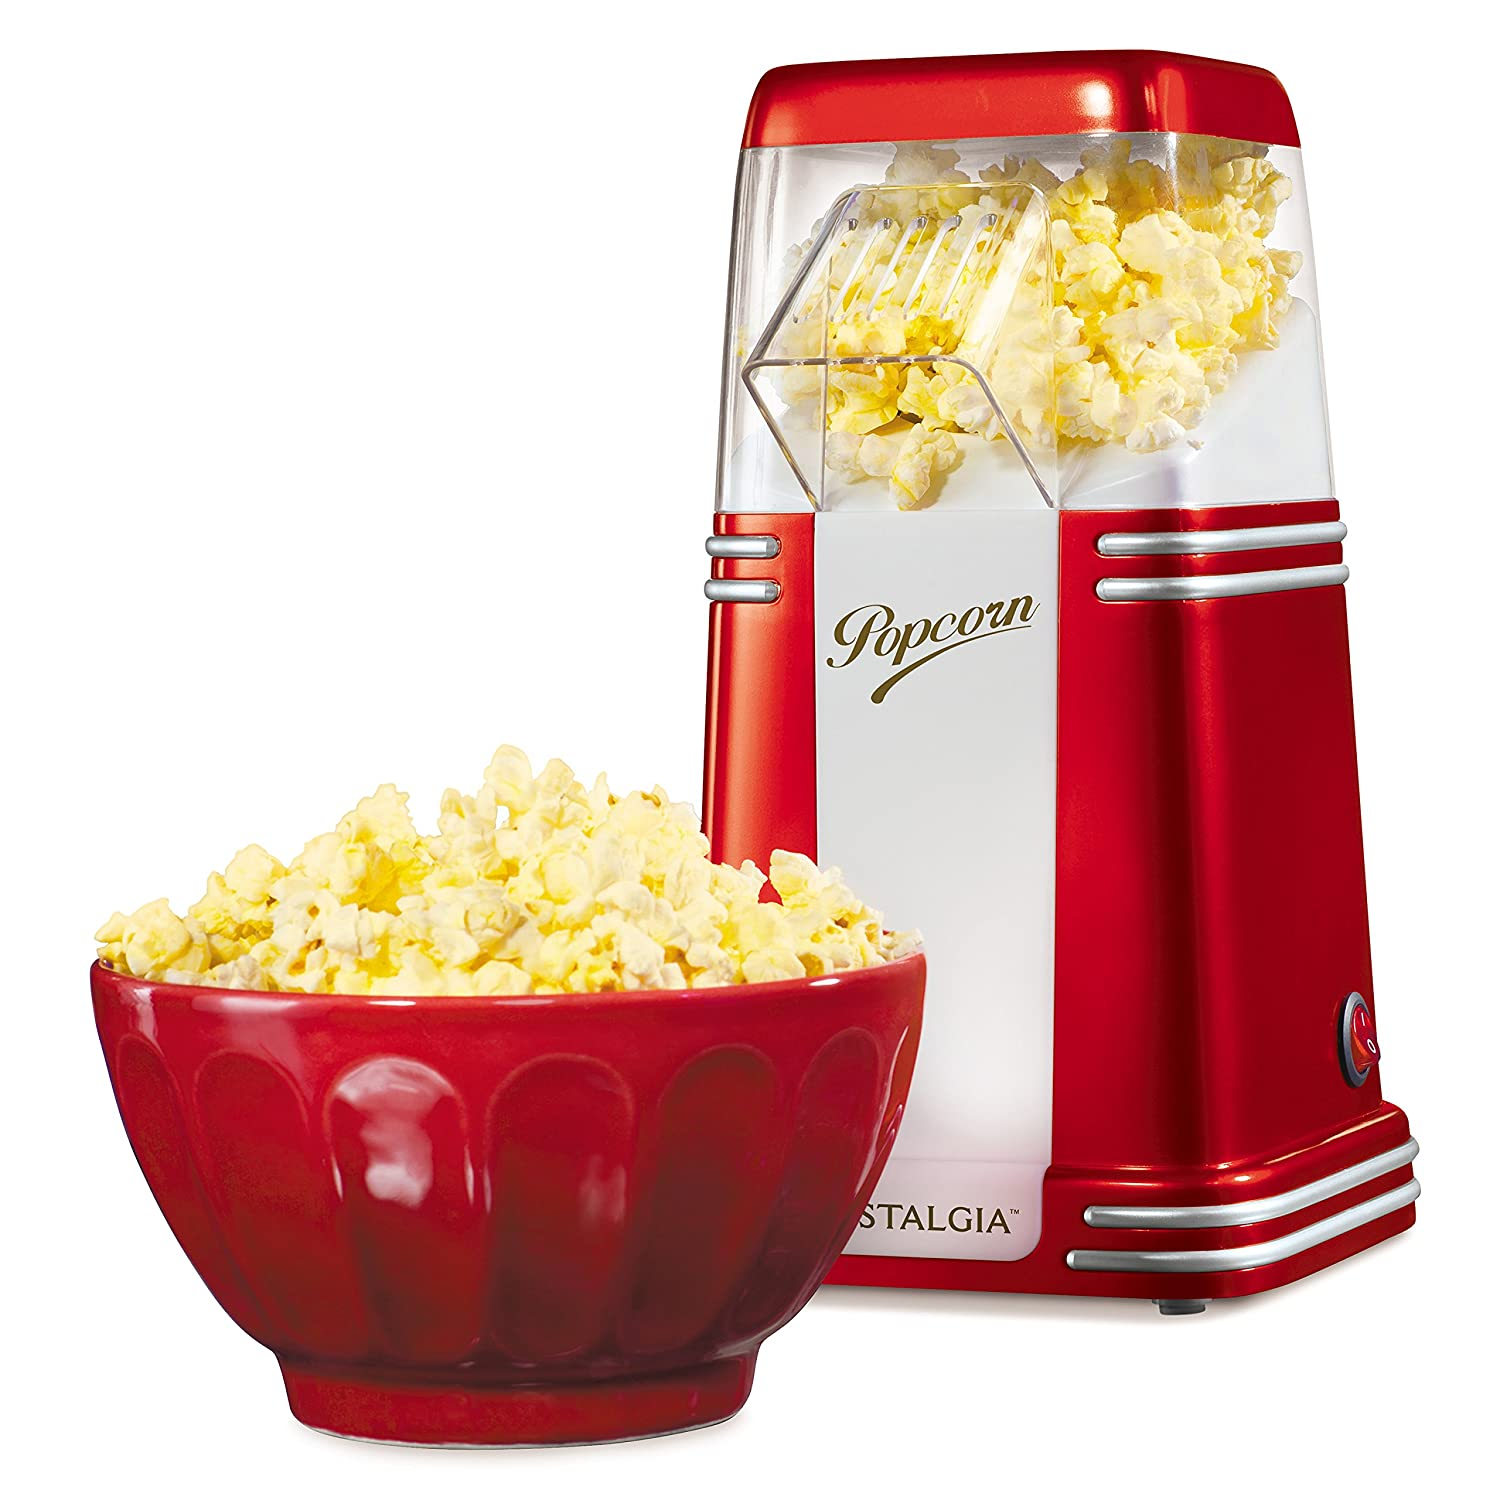 Nostalgia 8-Cup Hot Air Popcorn Maker